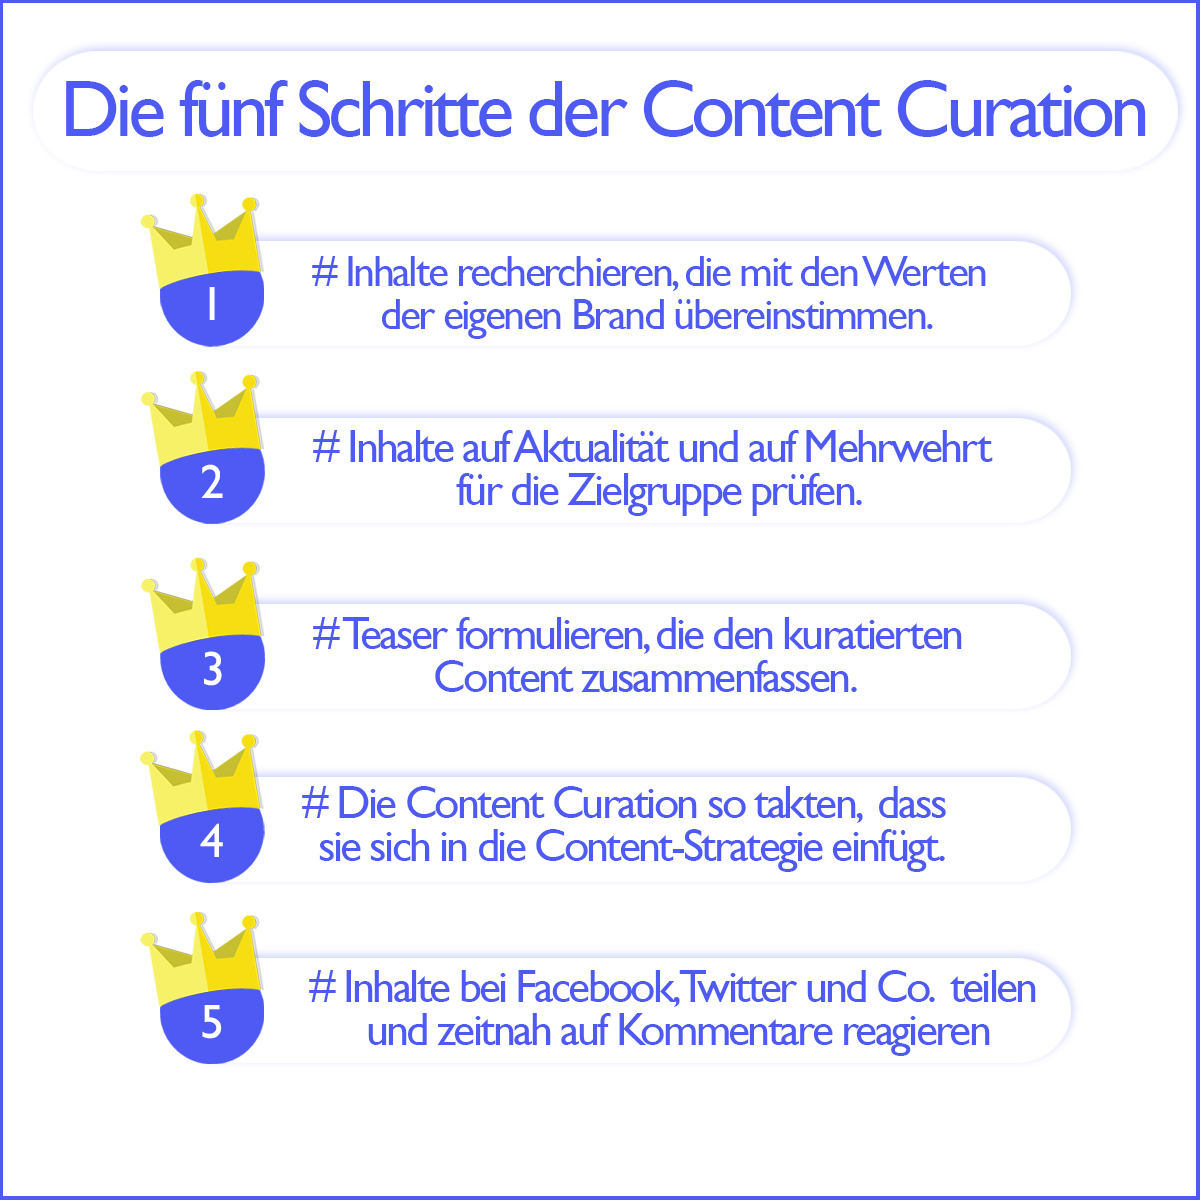 5schritte_content curation